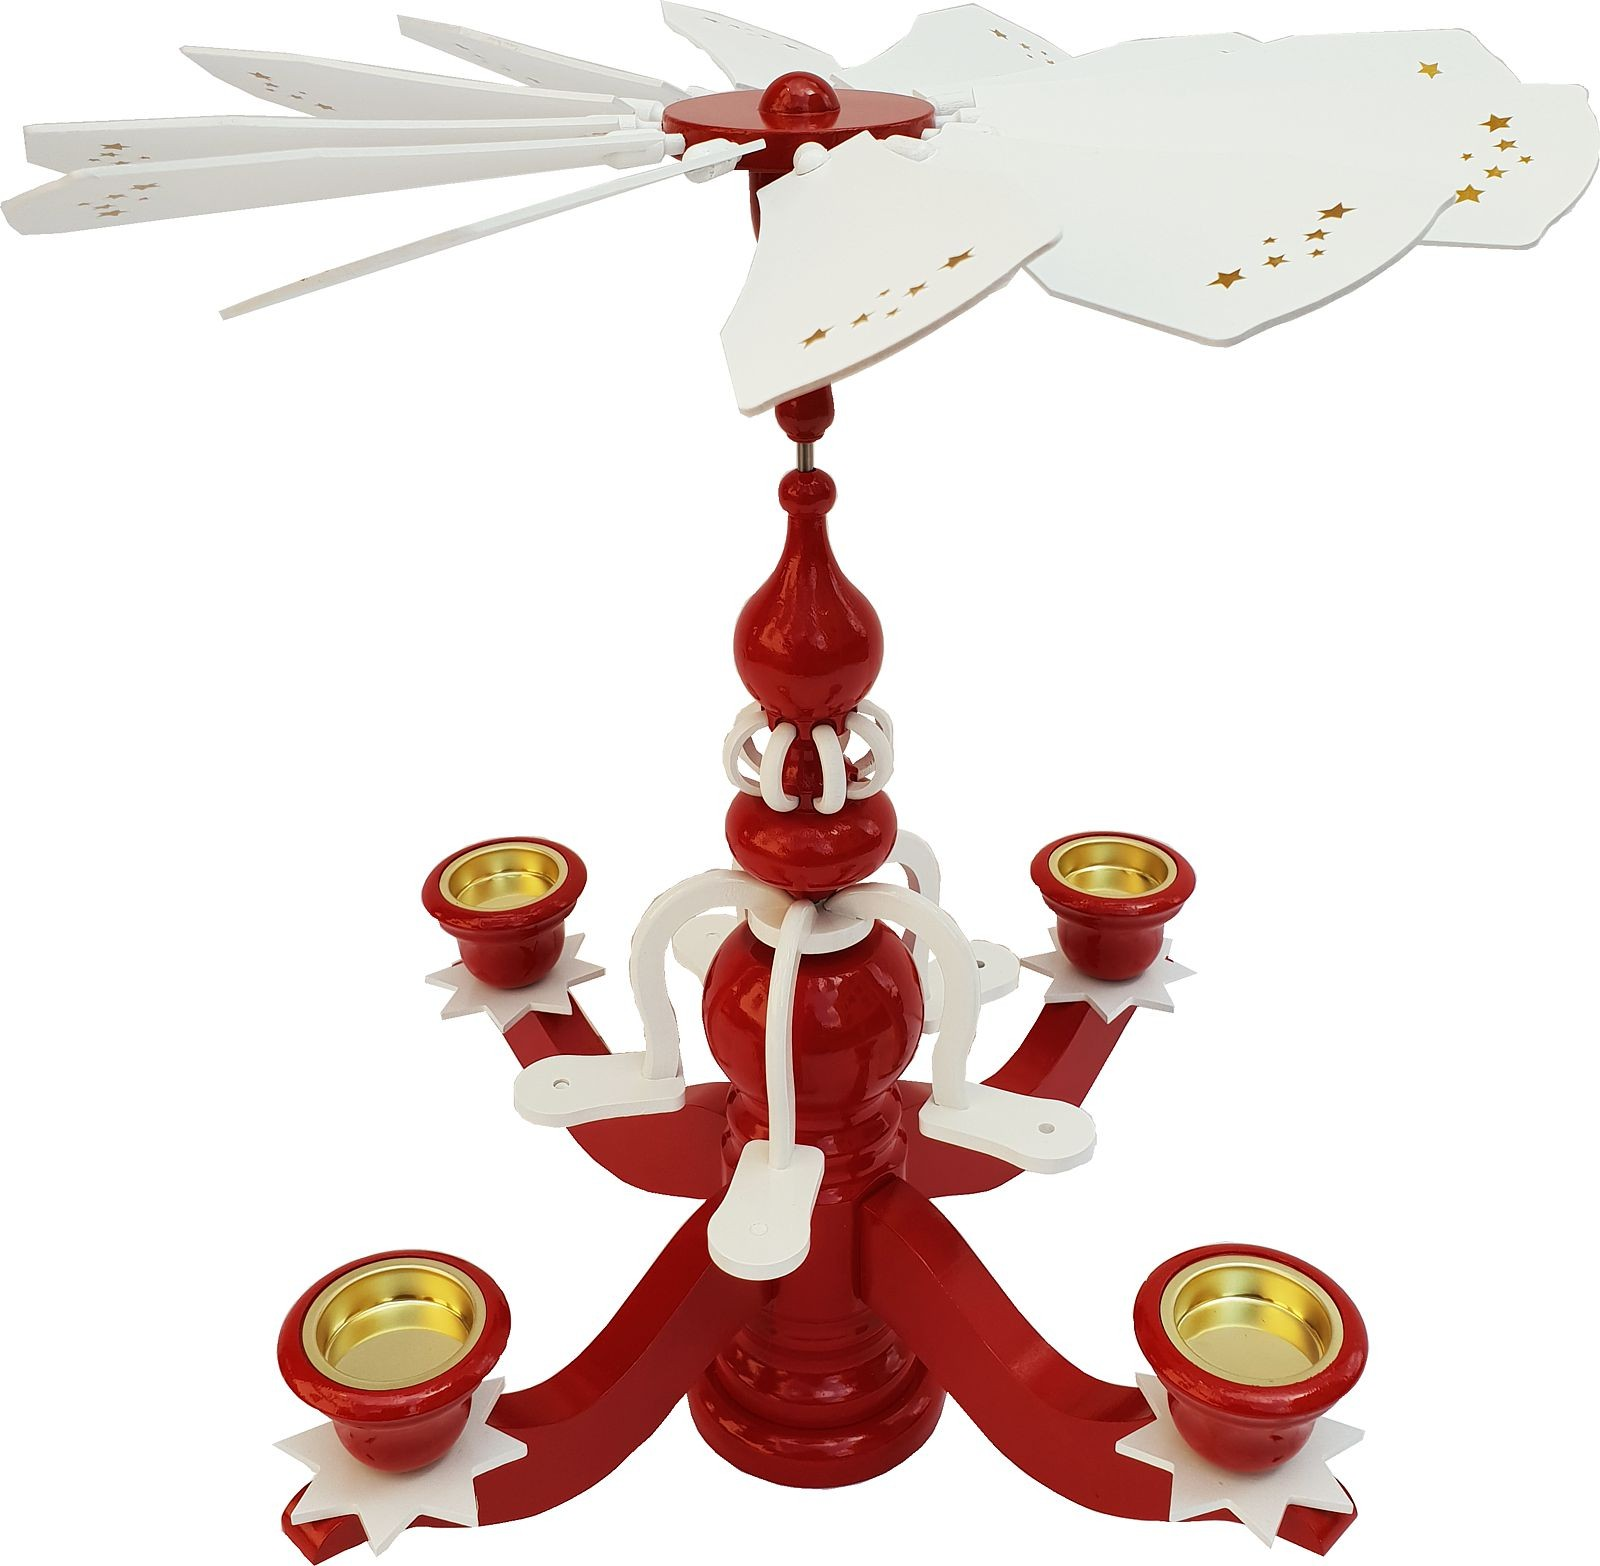 Candlestick pyramid big red, without figures